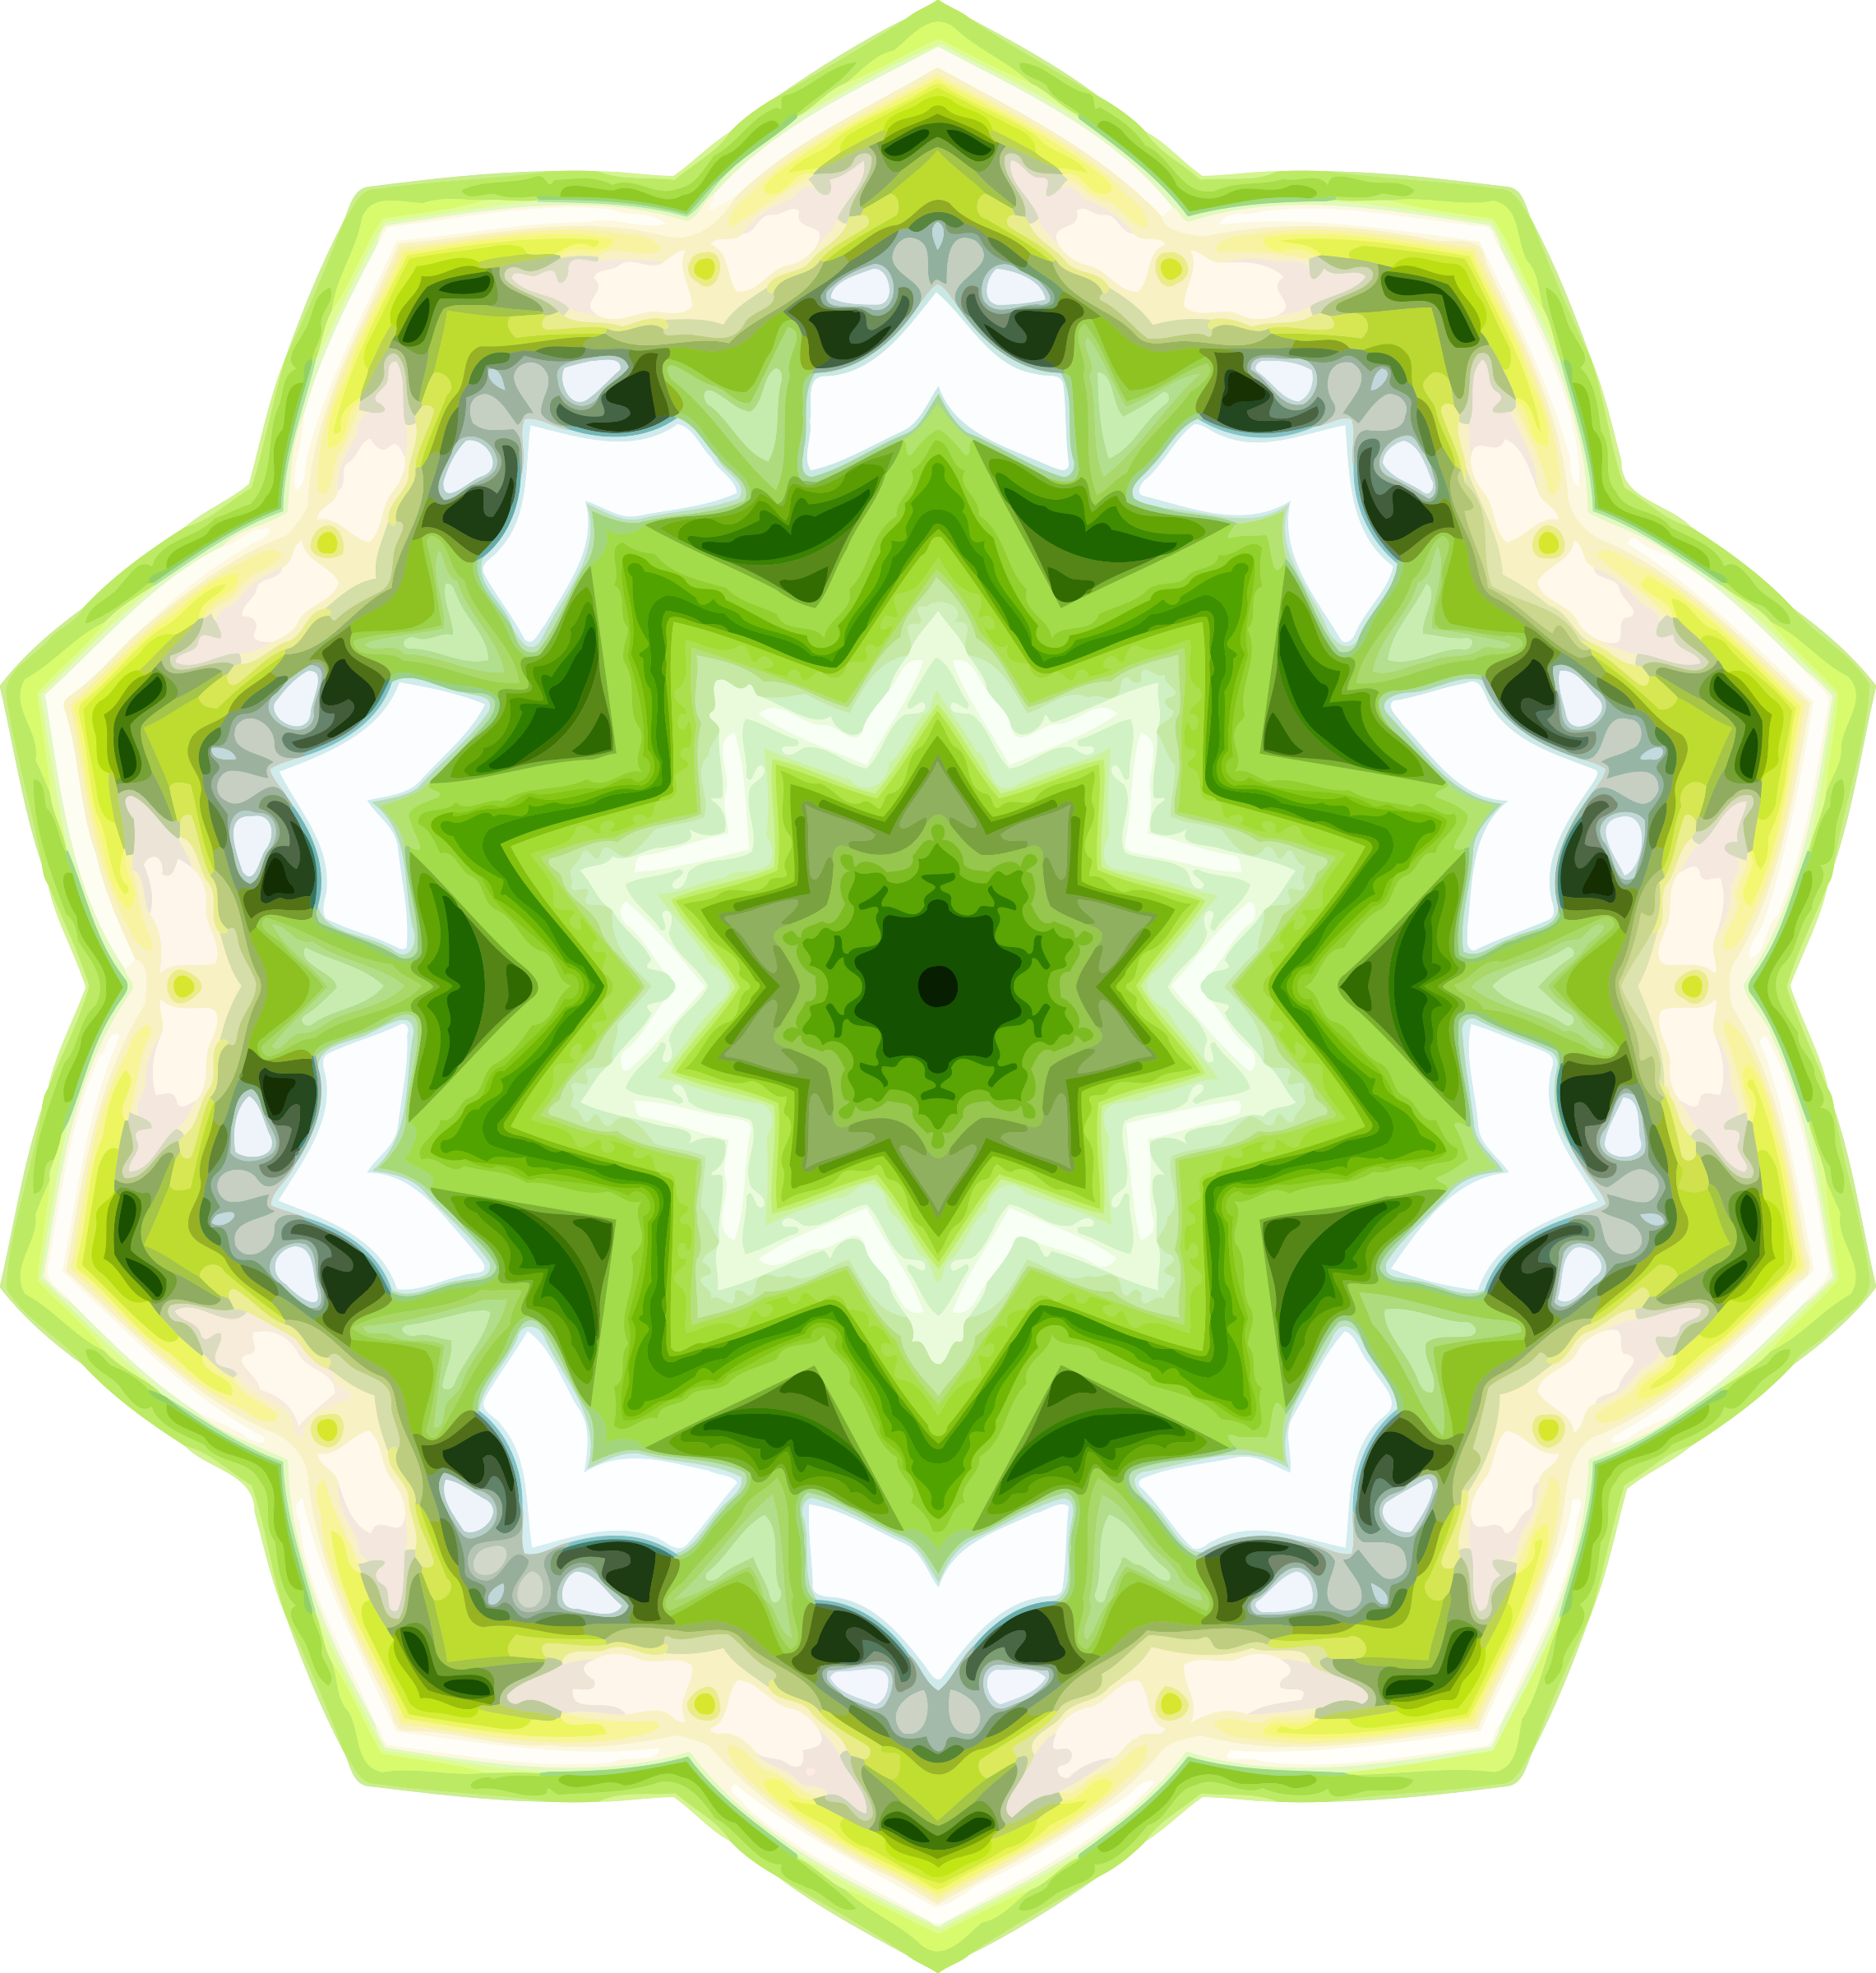 Rosemary kaleidoscope 8 by Firkin